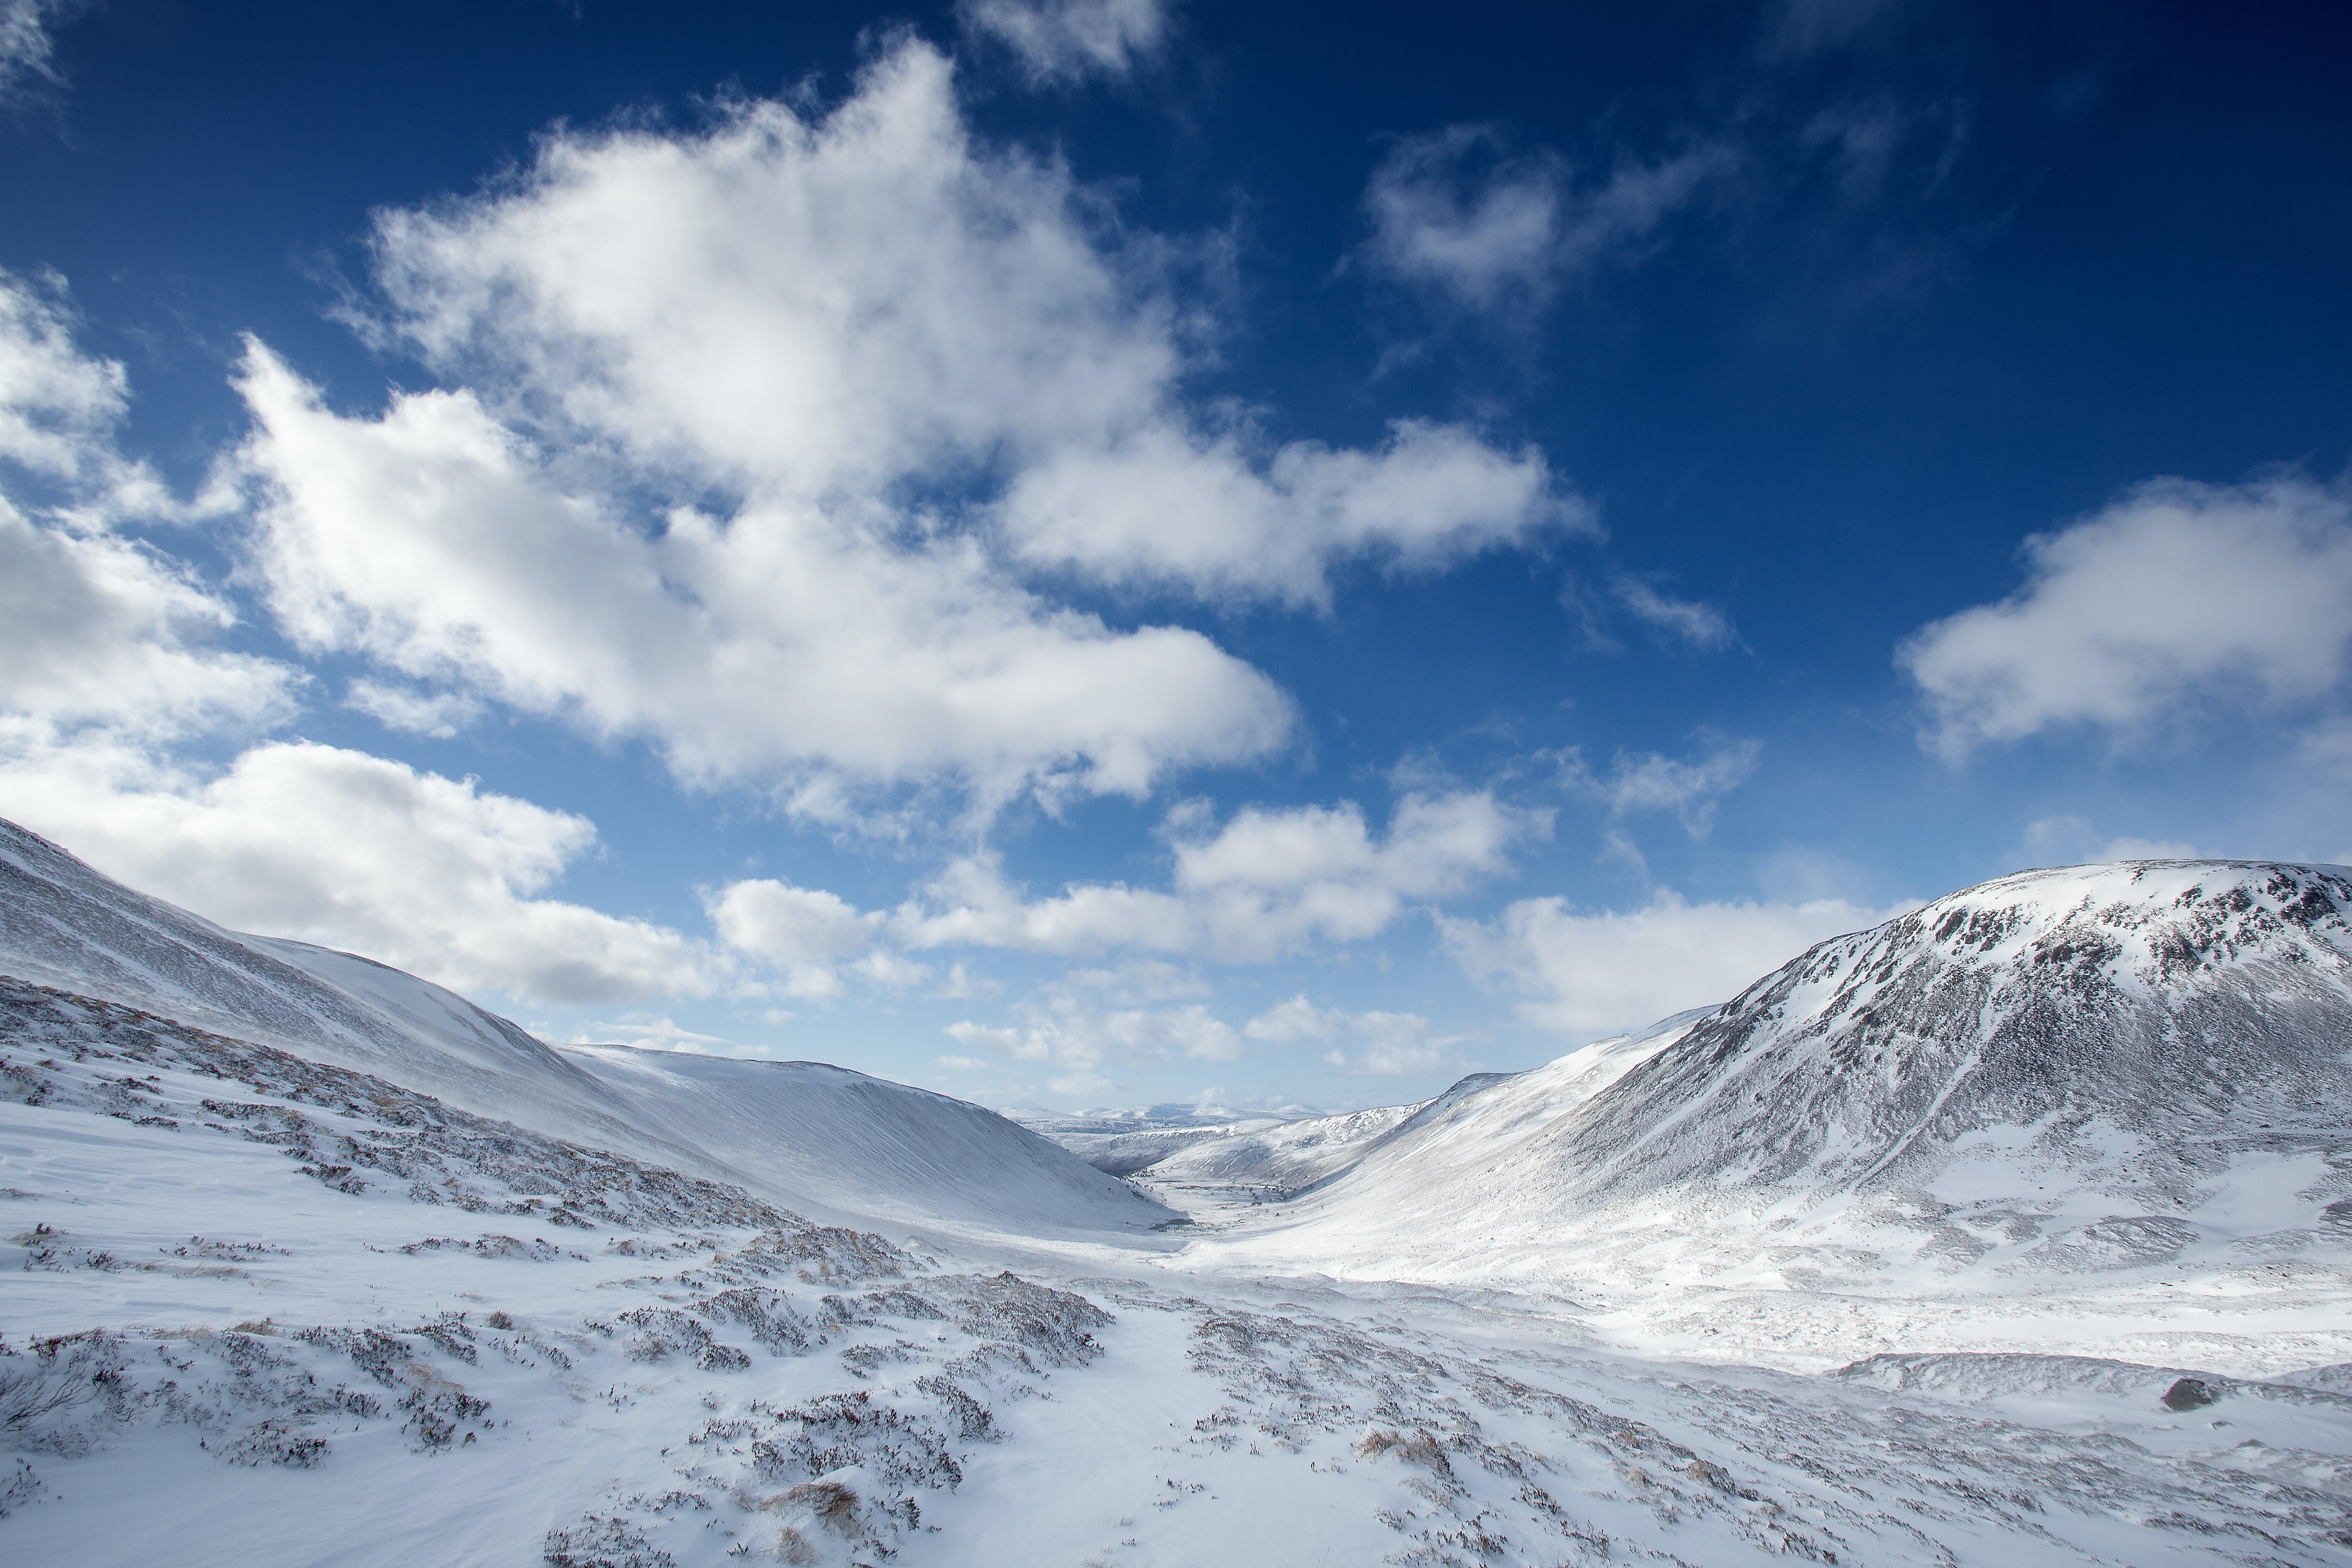 A snow filled valley in between mountains and a cloudy, blue sky in Cairngorms National Park in Scotland